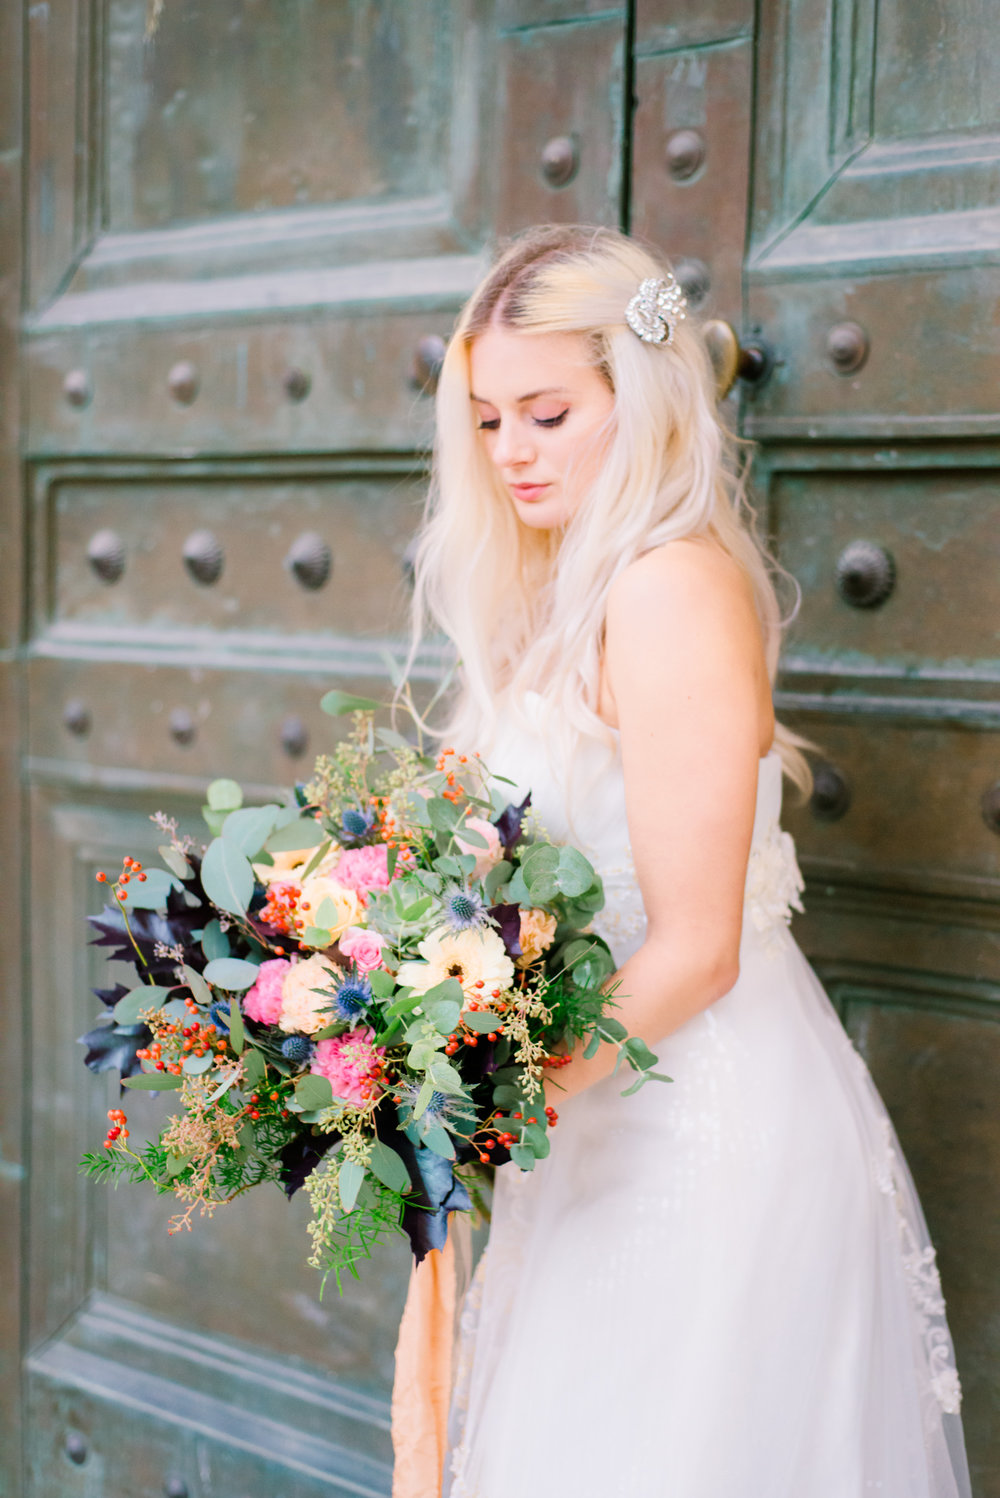 Elegant Organic Fall Swedish Bridal Wedding Styled Shoot - Erika Alvarenga Photography-54.jpg